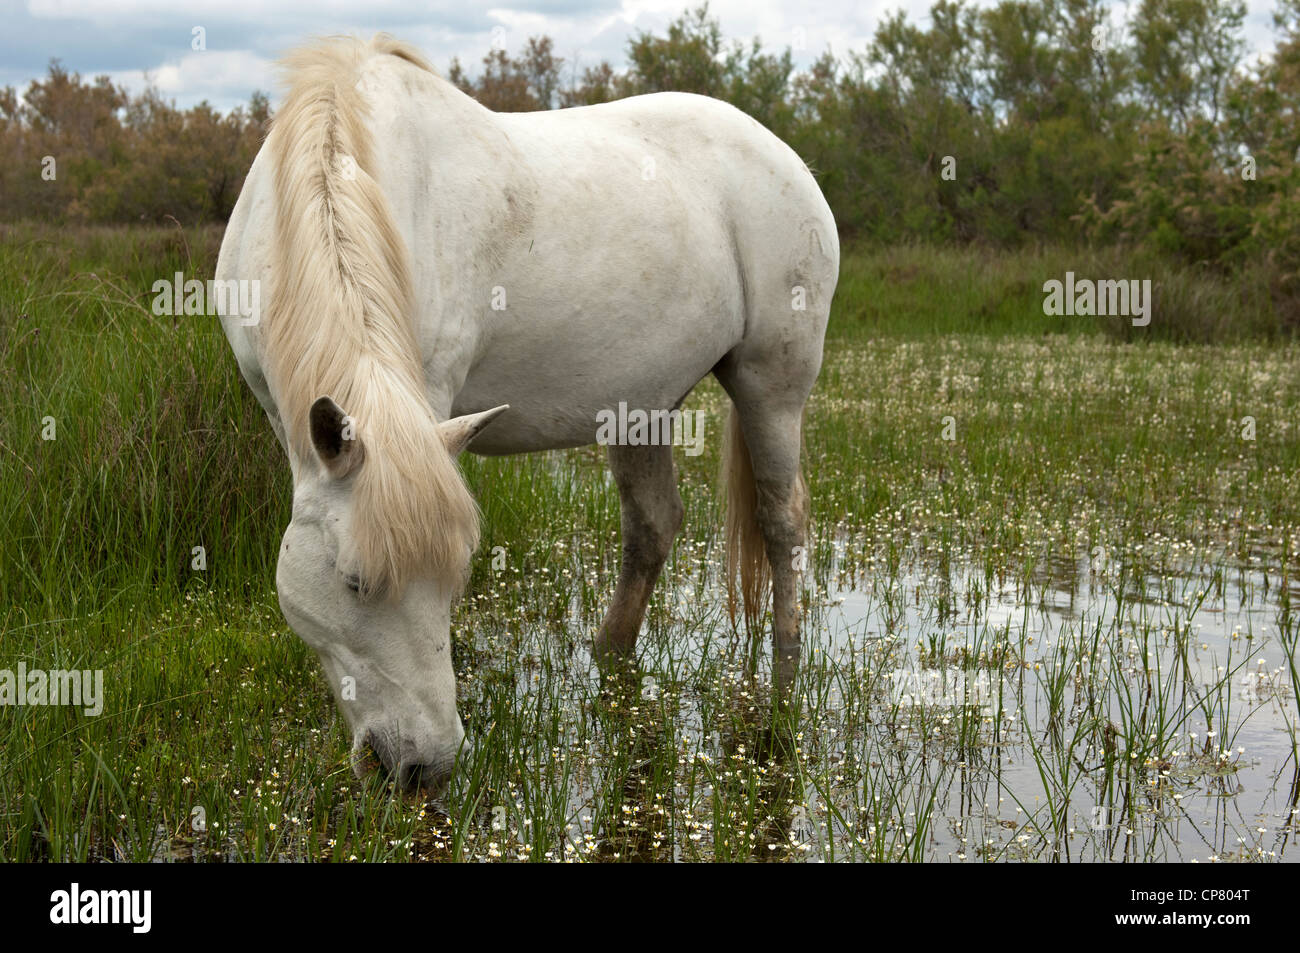 Camargue horse in a wetland, Camargue, France - Stock Image